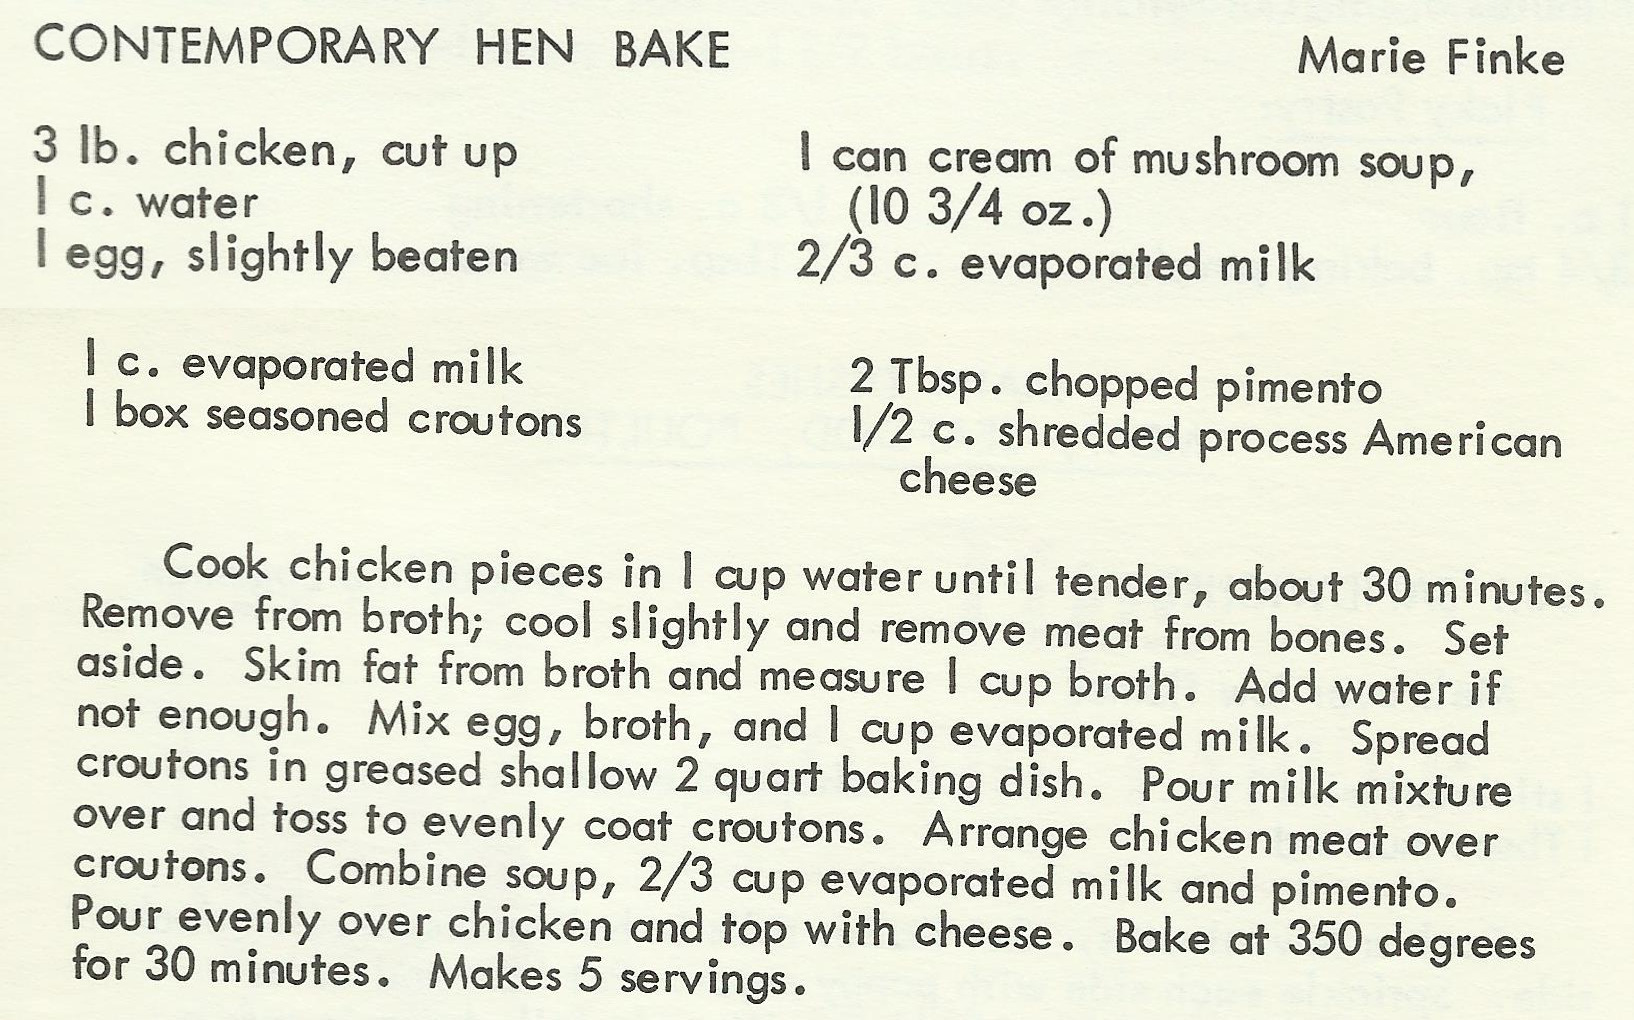 Contemporary Hen Bake